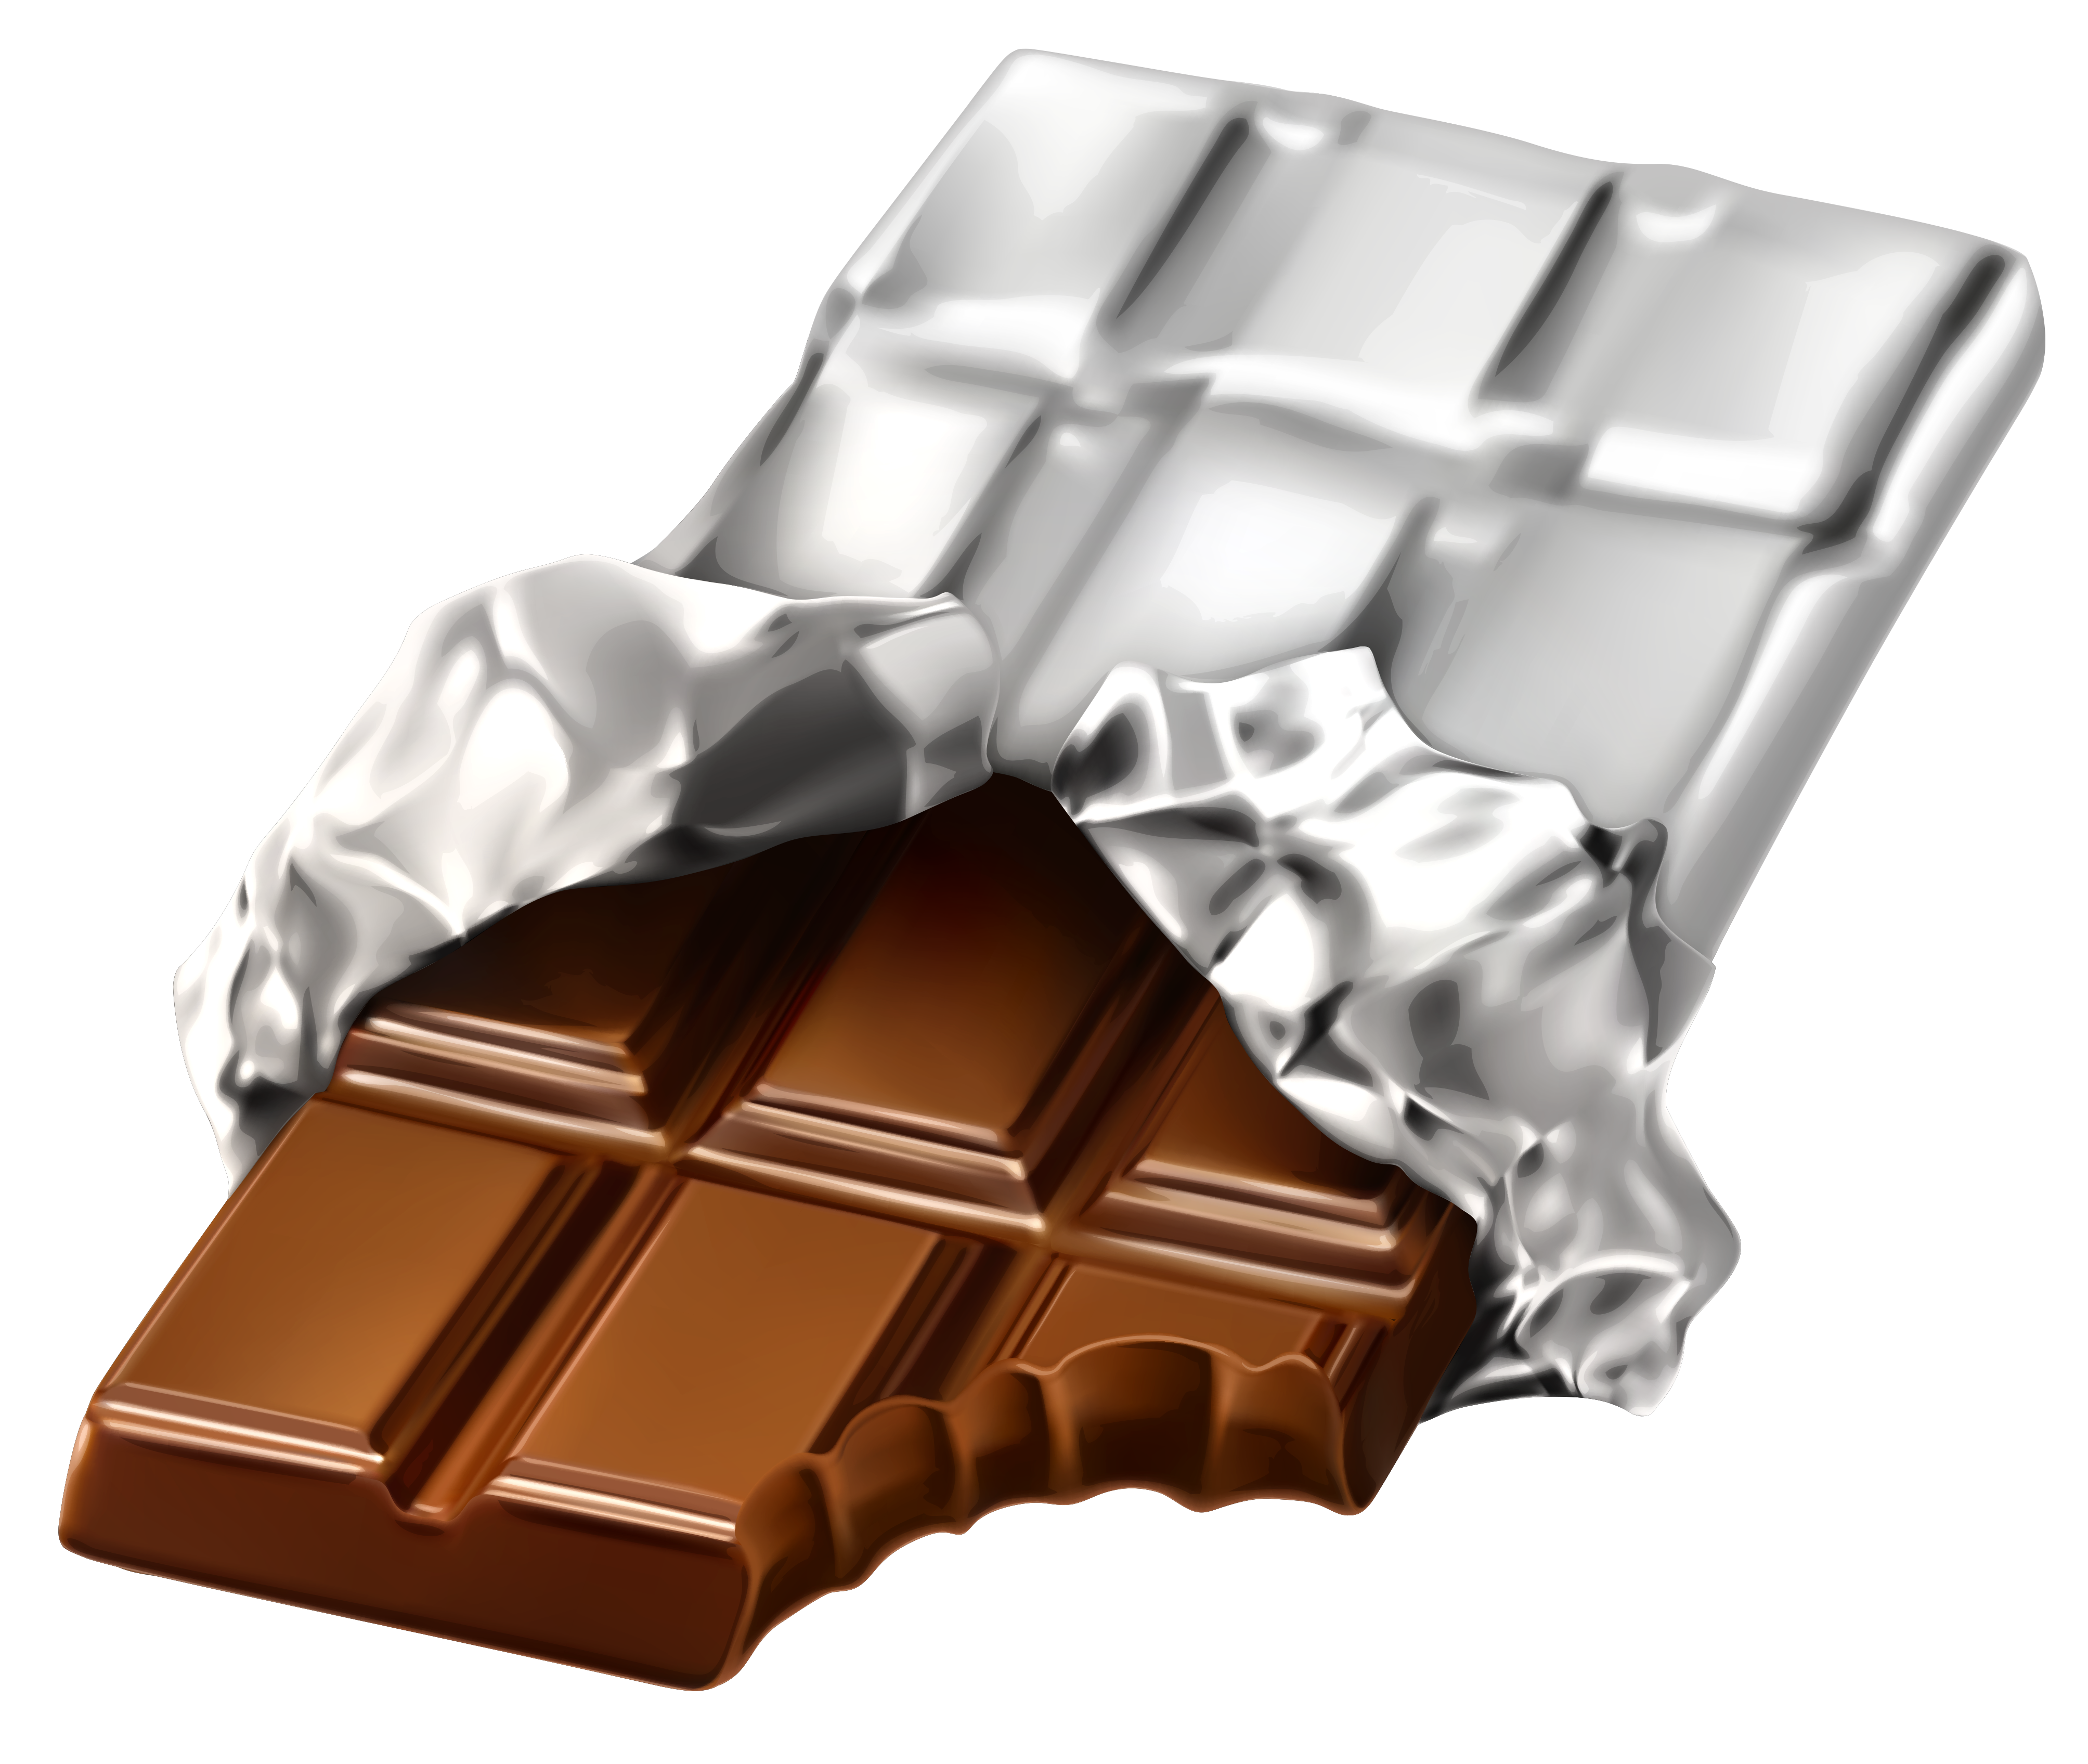 Chocolate clipart #5, Download drawings